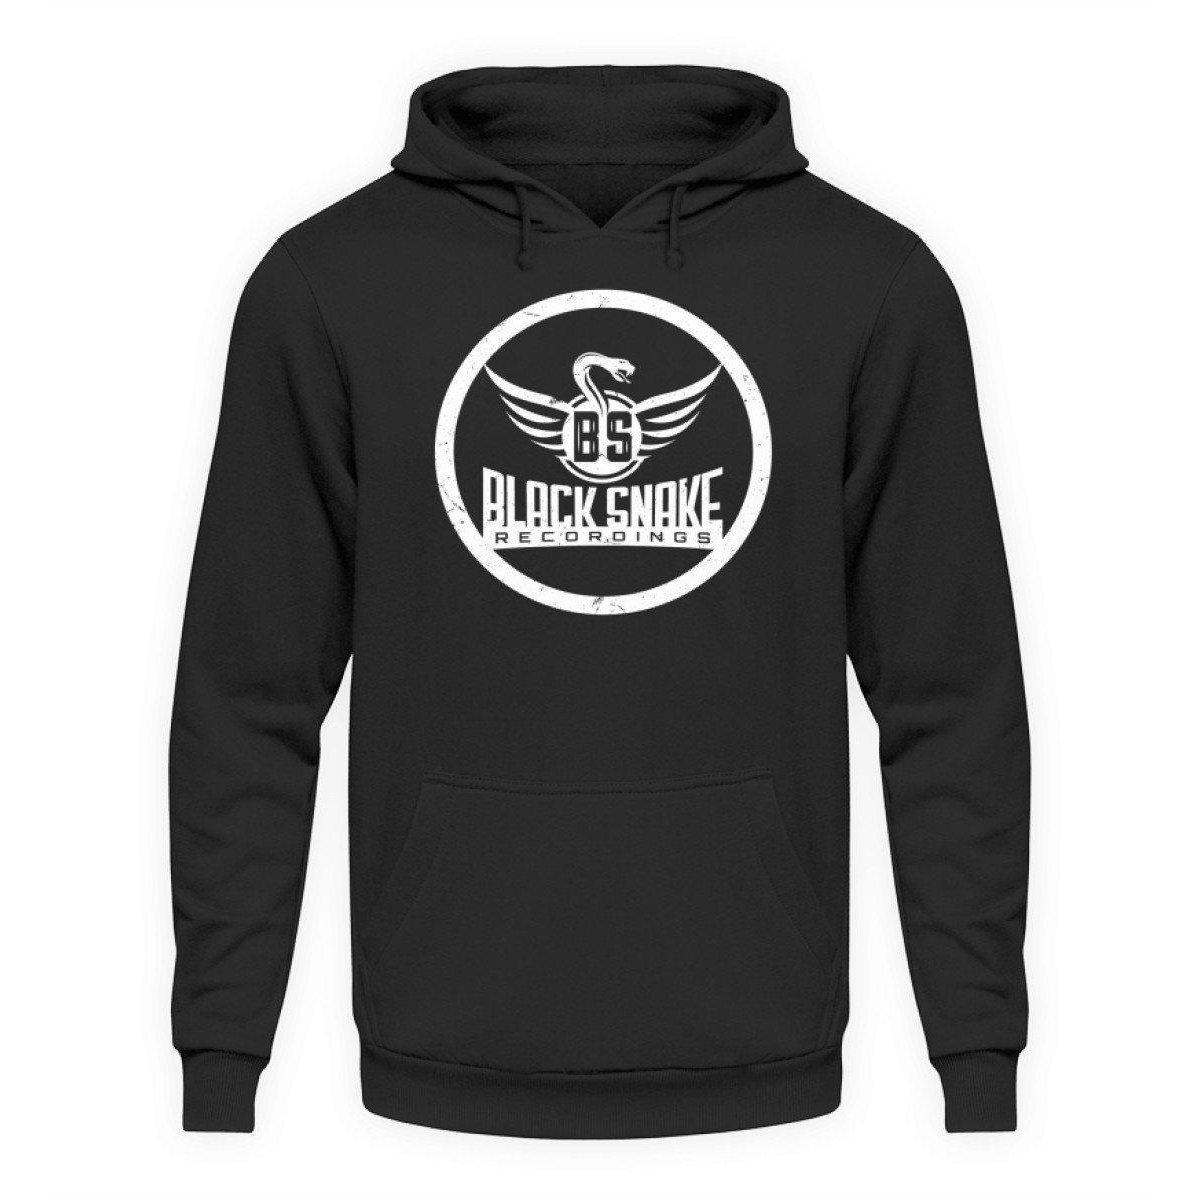 Black Snake Recordings Collection - Unisex Kapuzenpullover Hoodie Unisex Hoodie Jet Black / L - Rave On!® der Club & Techno Szene Shop für Coole Junge Mode Streetwear Style & Fashion Outfits + Sexy Festival 420 Stuff